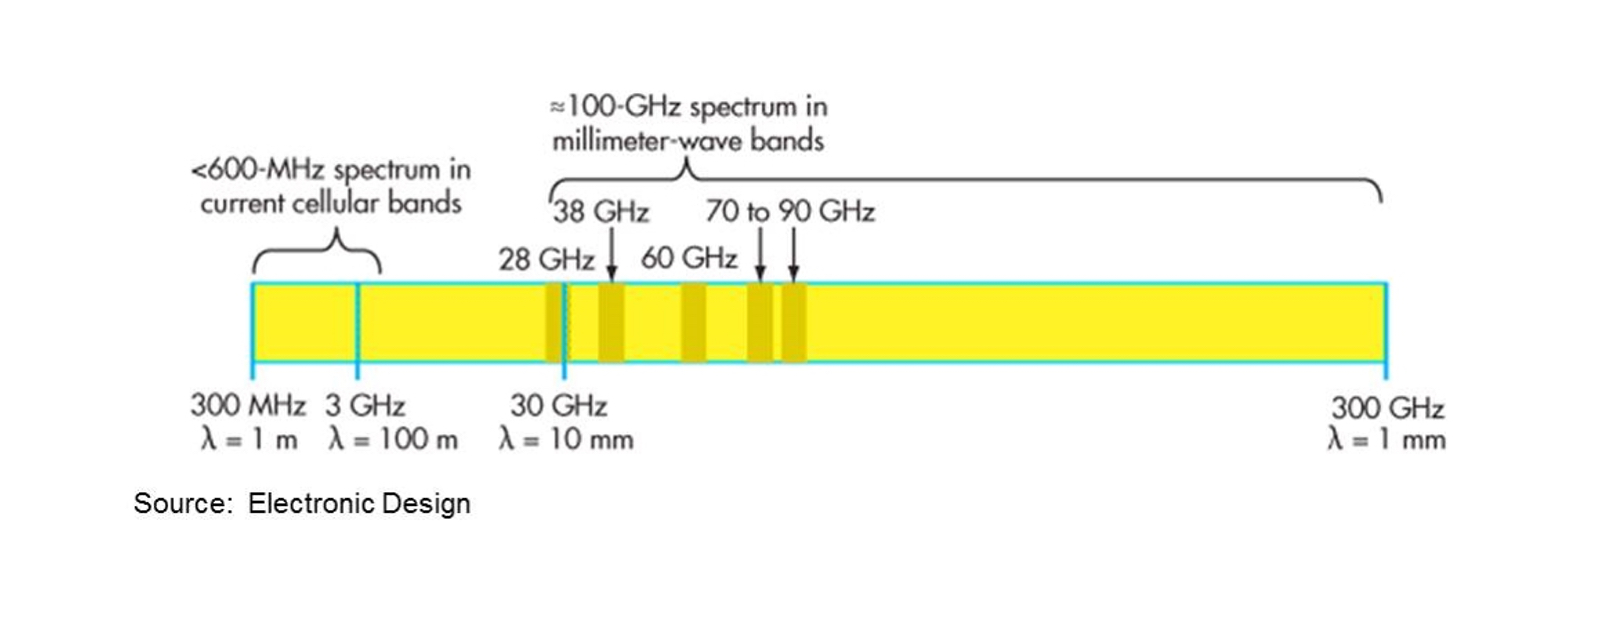 Graphic showing 5G Wi-Fi and millimeter wave technology.